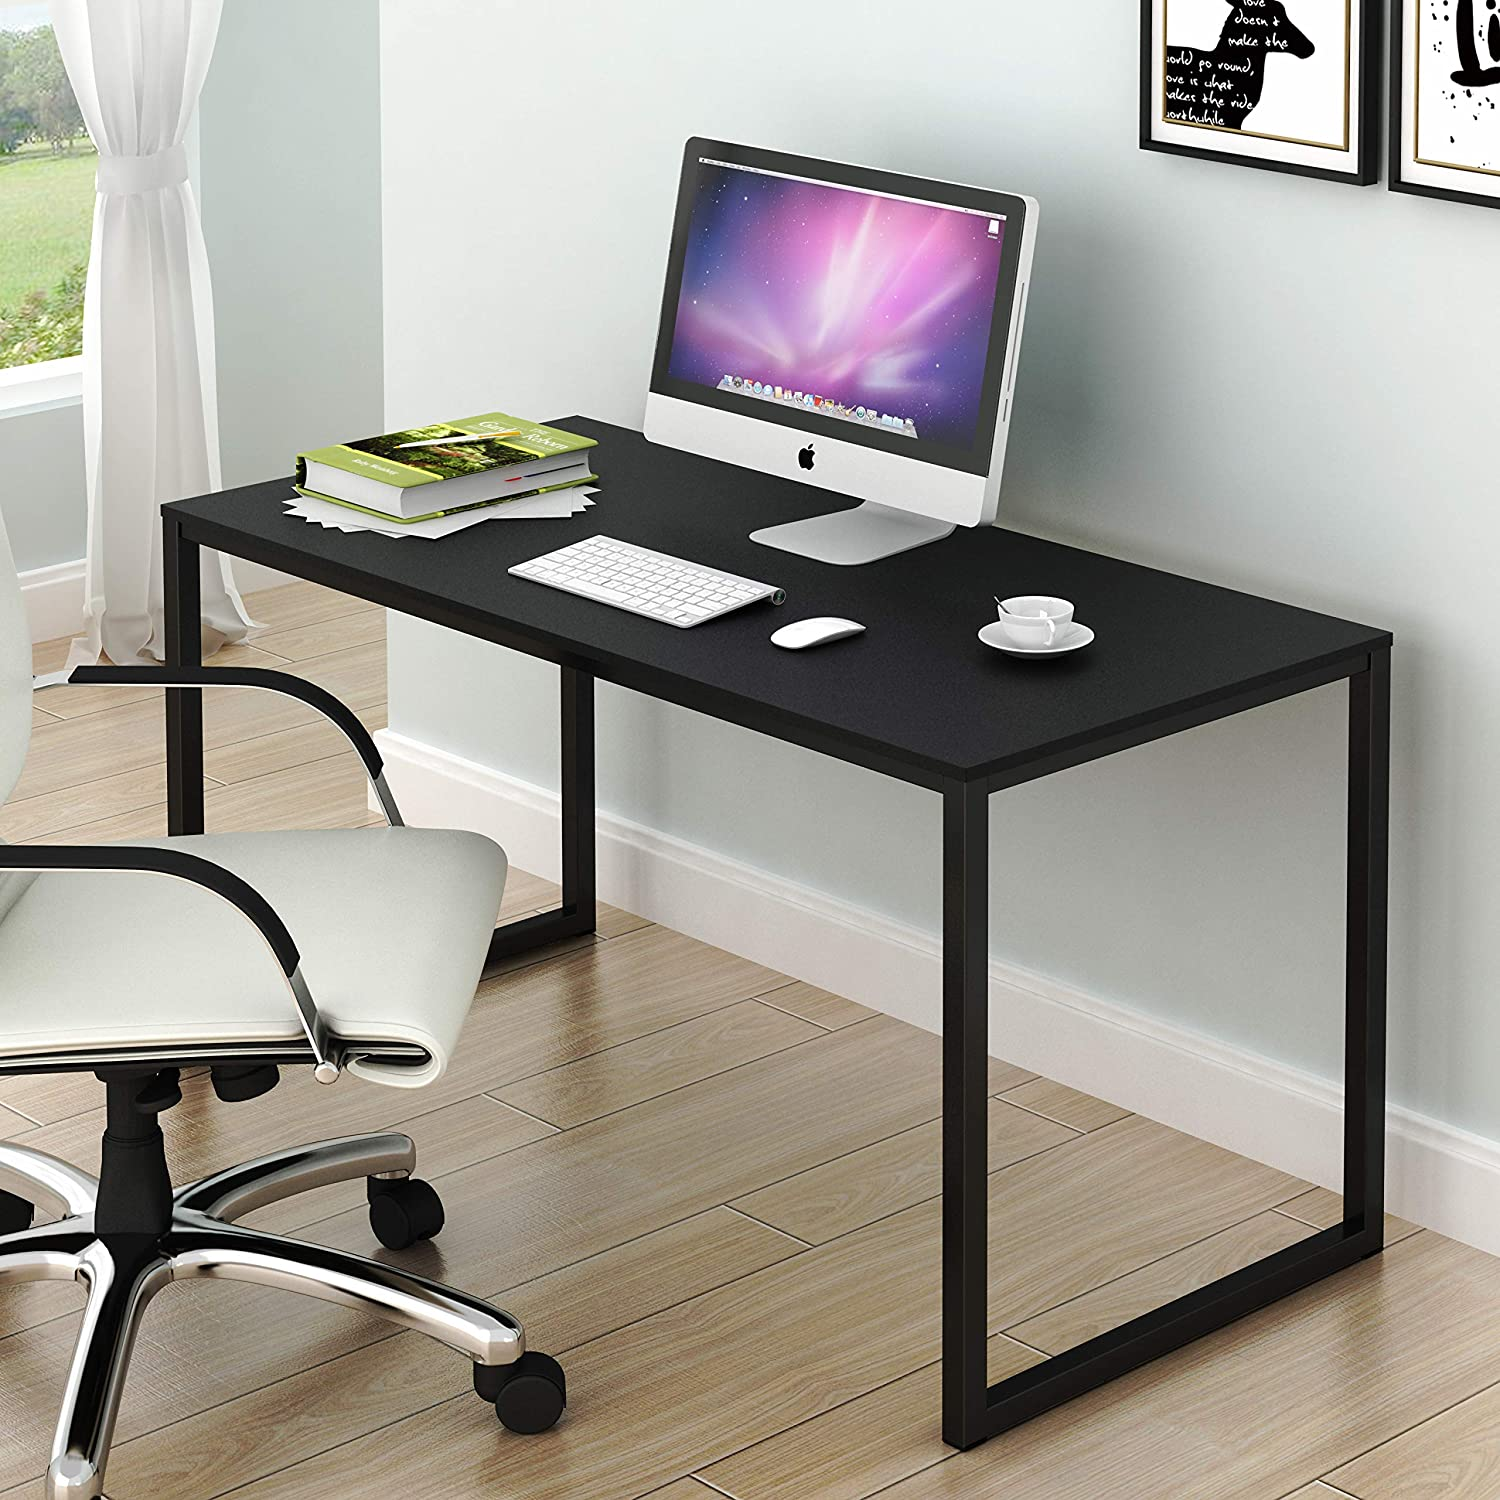 Amazon Hot Sell Home Office 48 Inch Computer Table Desk Buy Home Office Desk Computer Desks Computer Table Desk Product On Alibaba Com